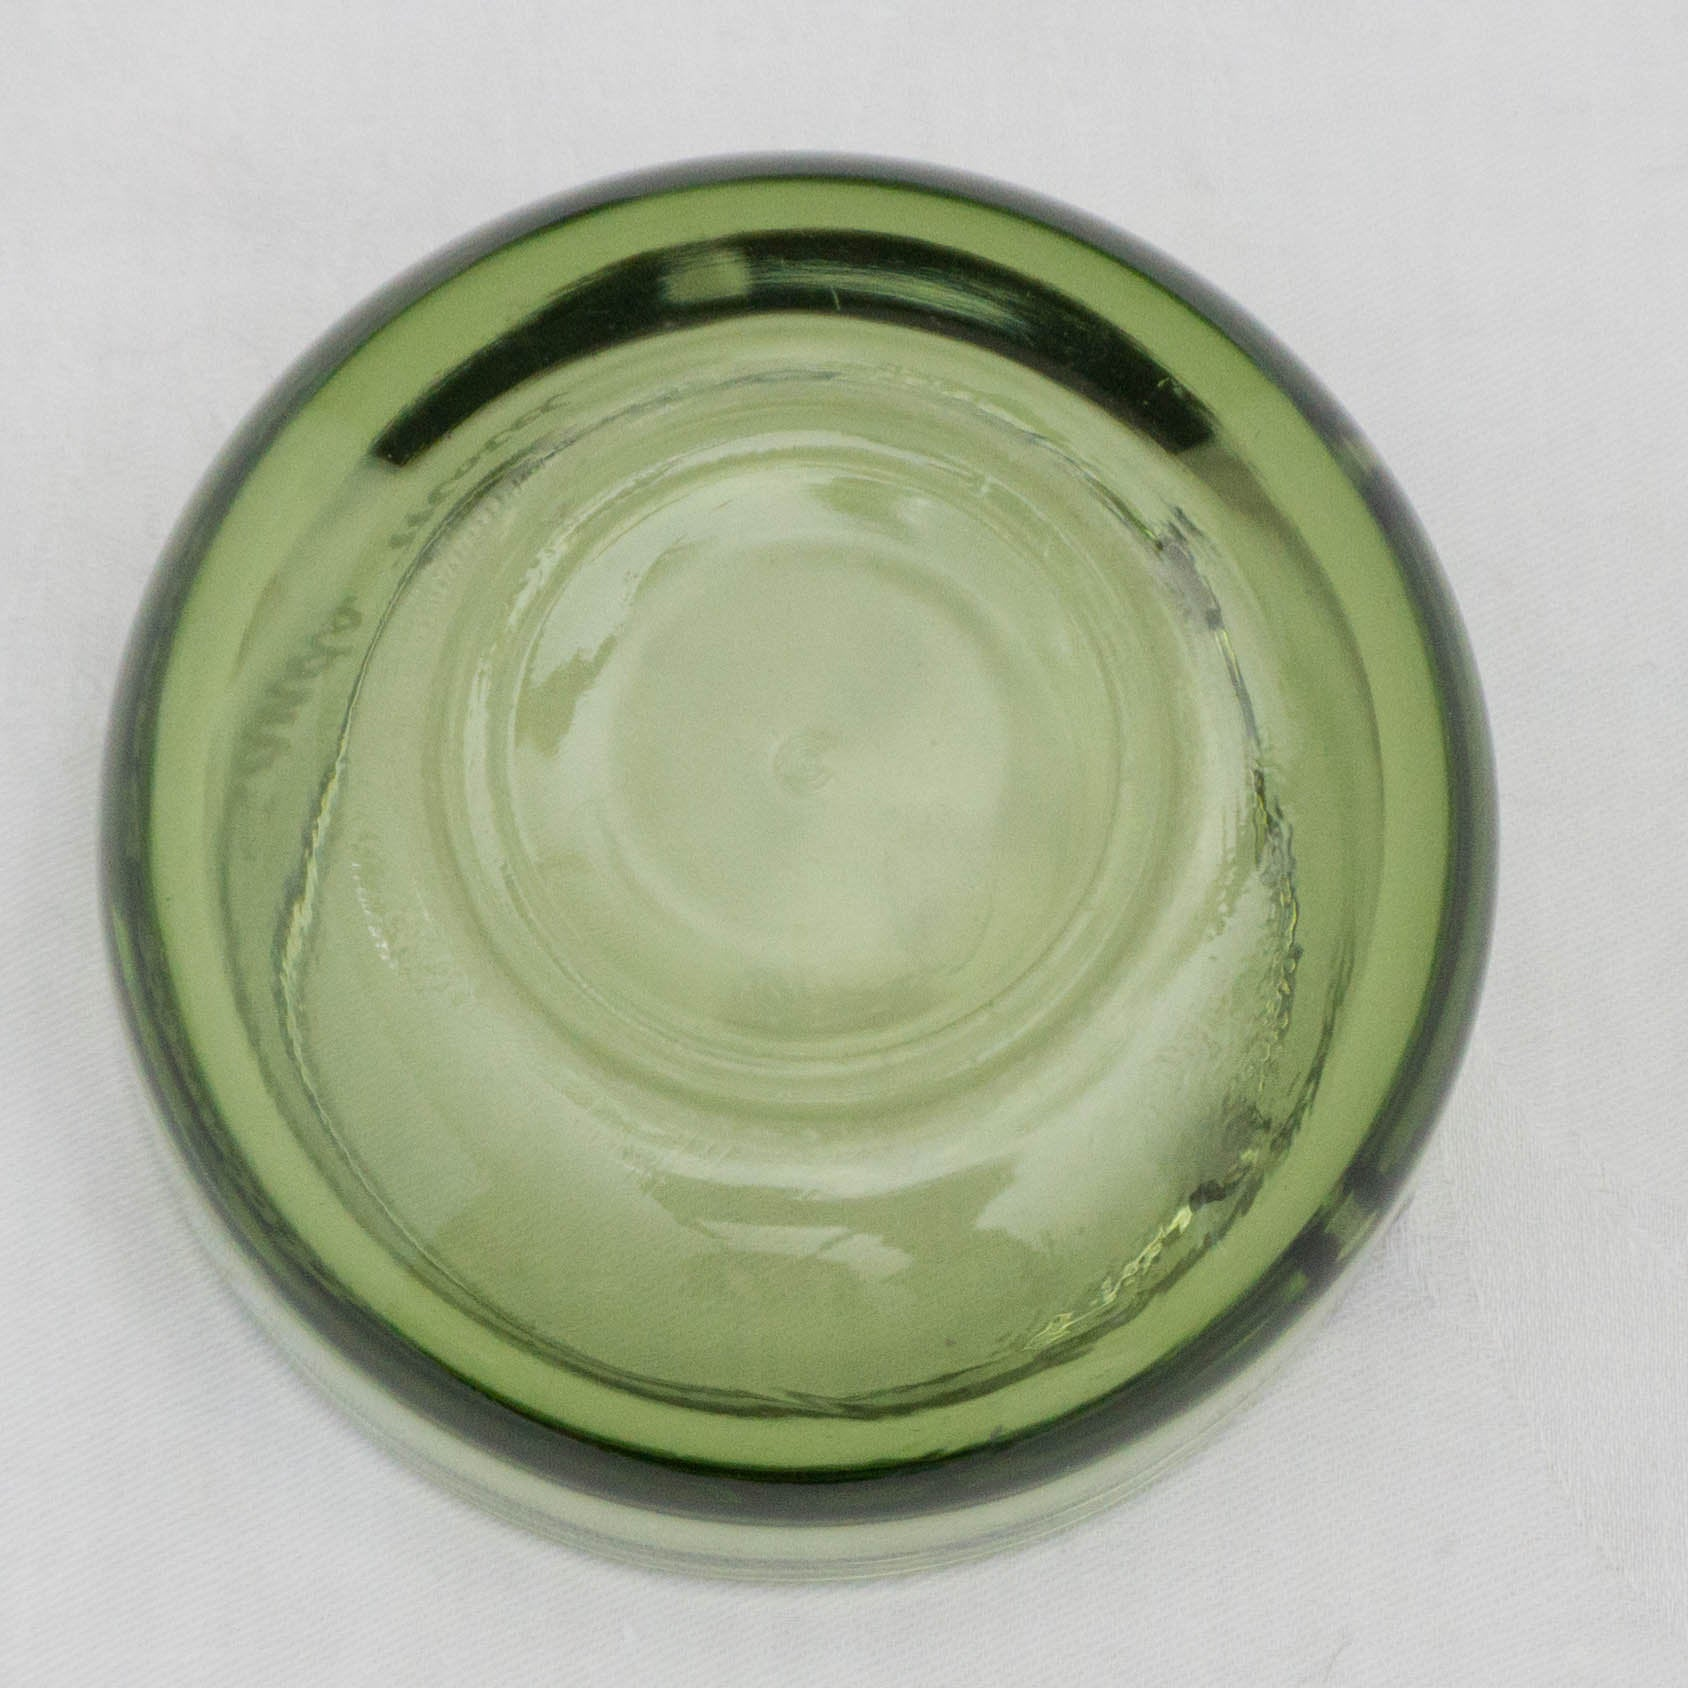 Green Glass Advertising Ashtray Atlantic Sands Motel New Hampshire